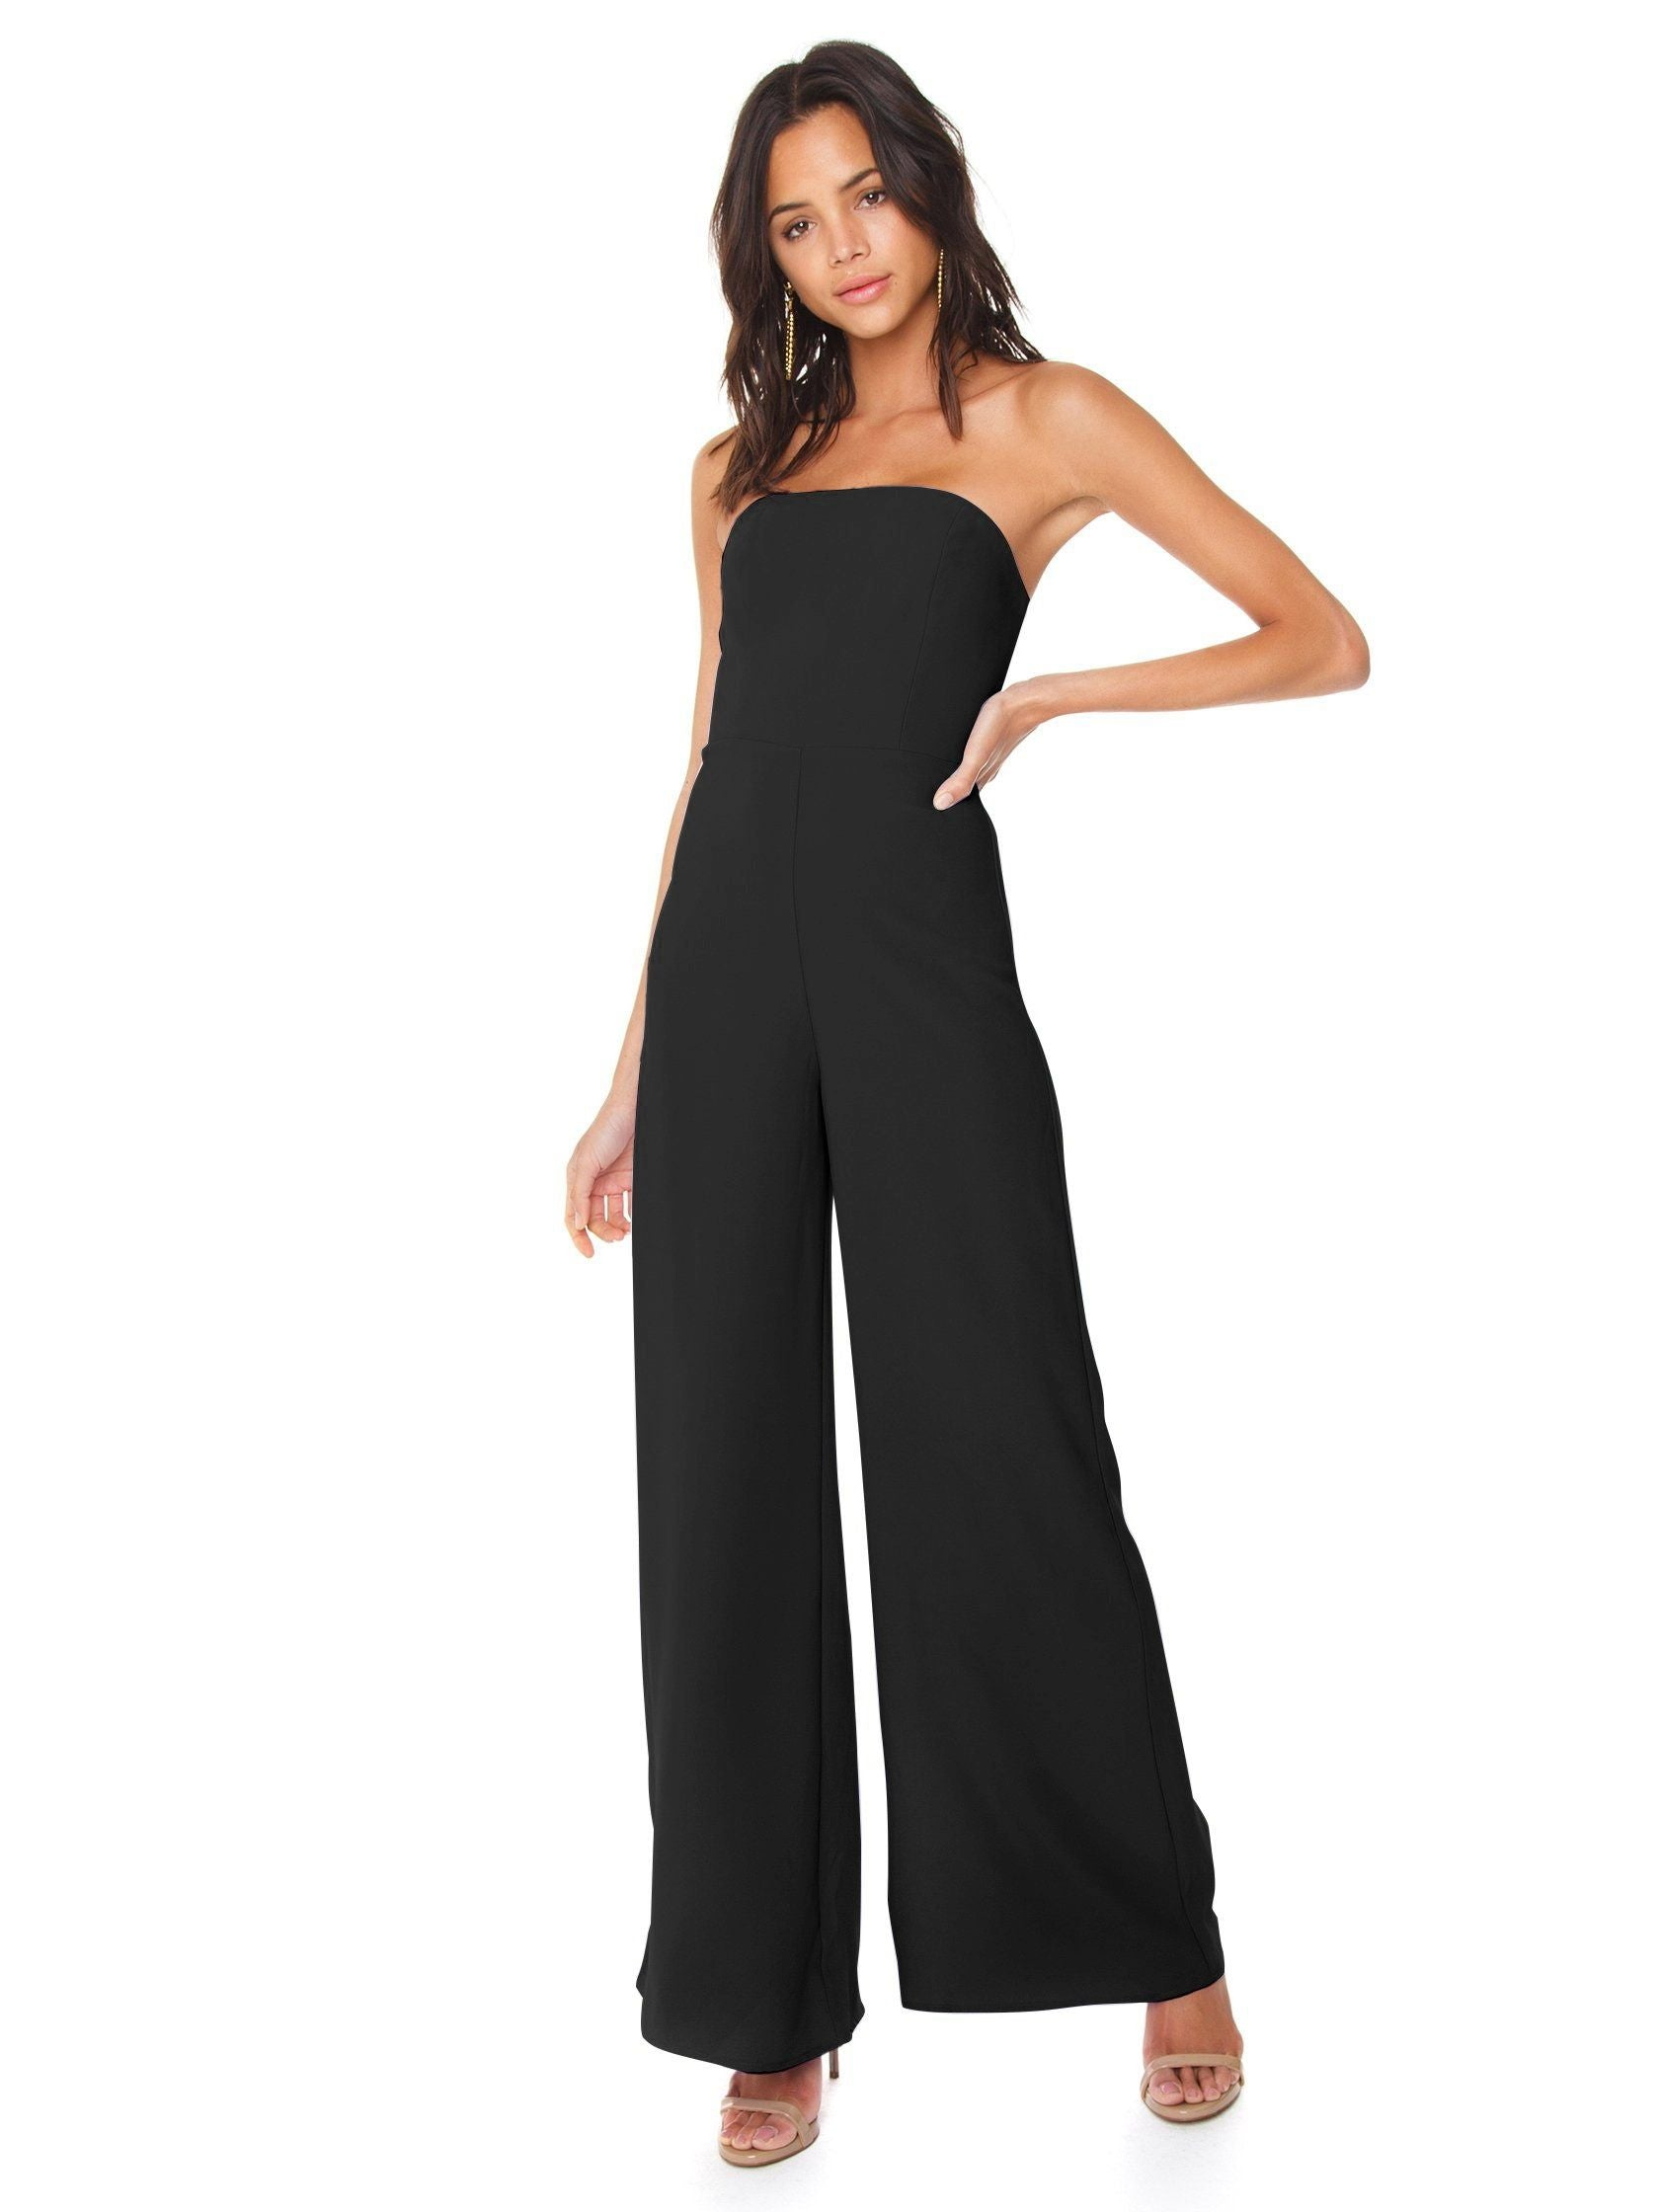 Girl outfit in a jumpsuit rental from Amanda Uprichard called Mandy Jumpsuit